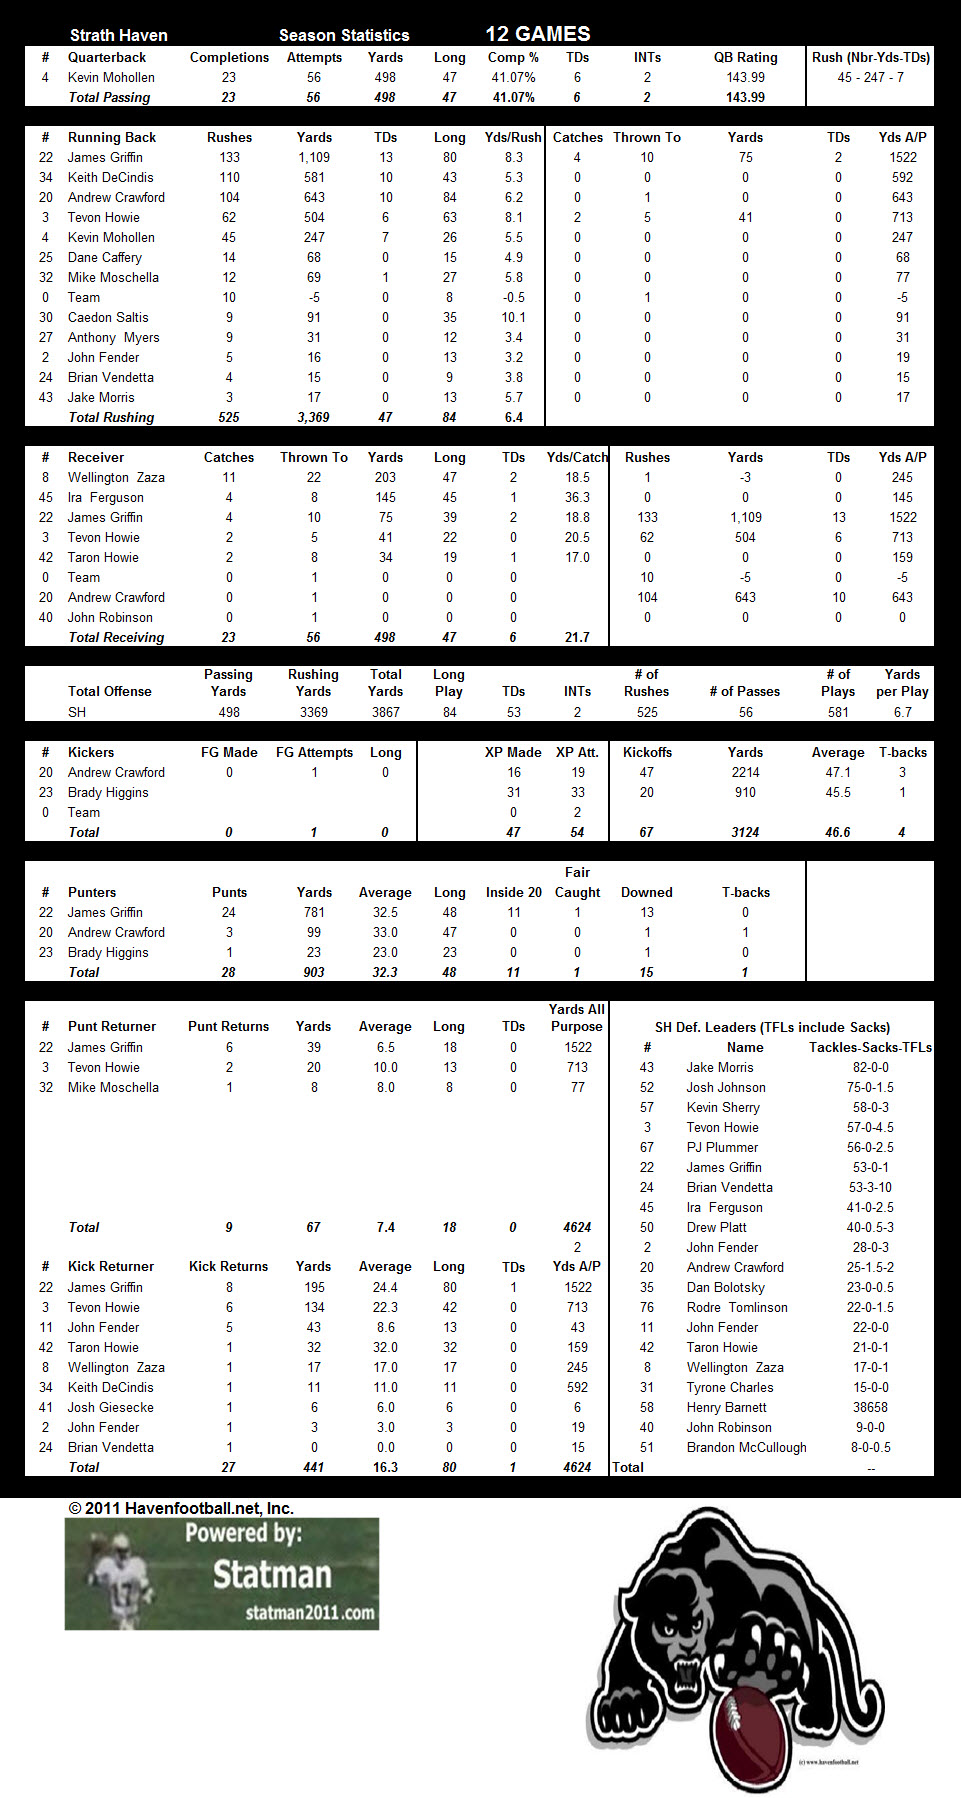 2011 Offensive Stats